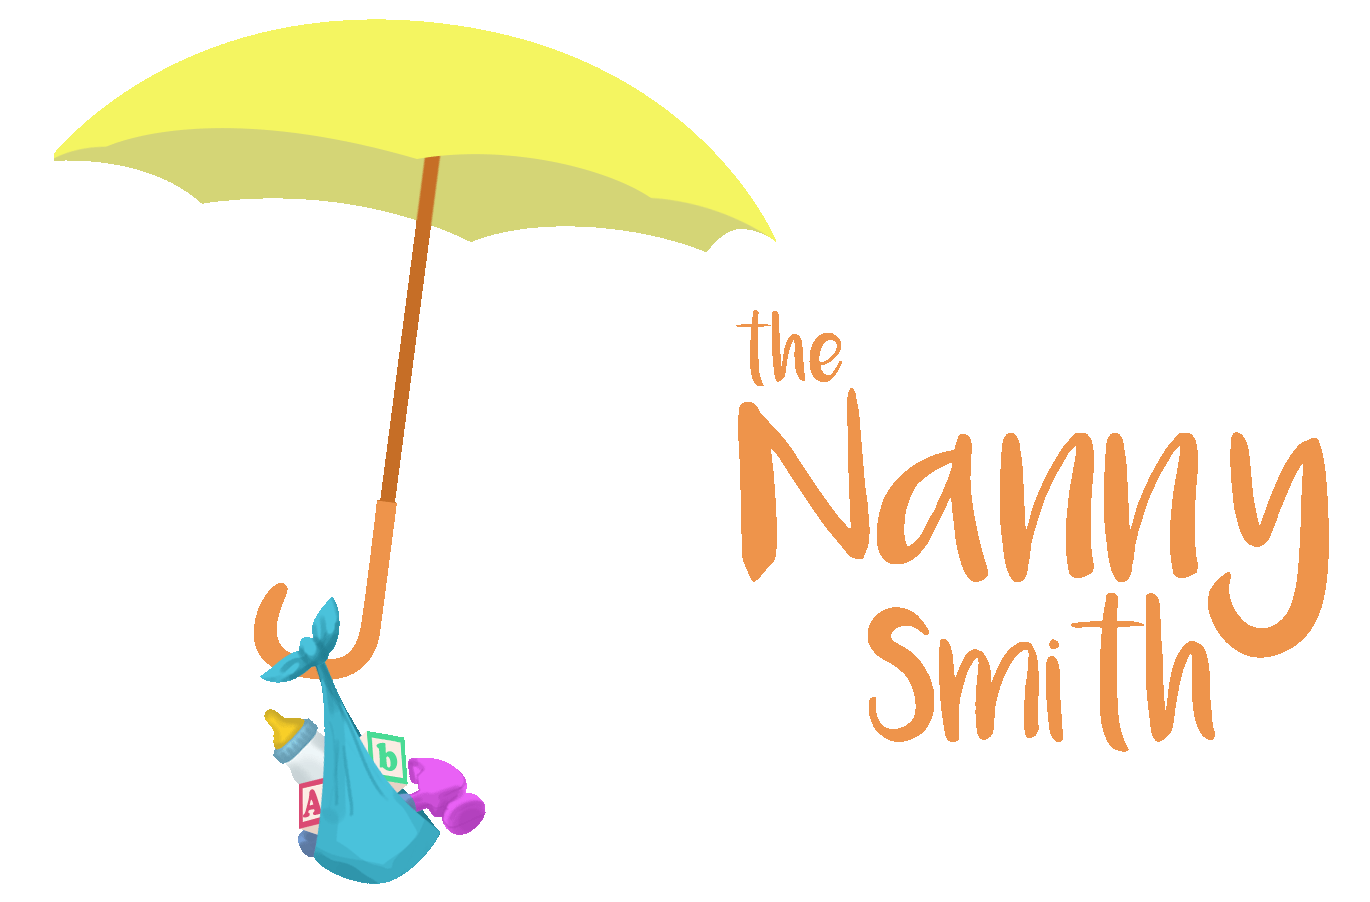 The Nanny Smith -- A Dependable Nanny Agency